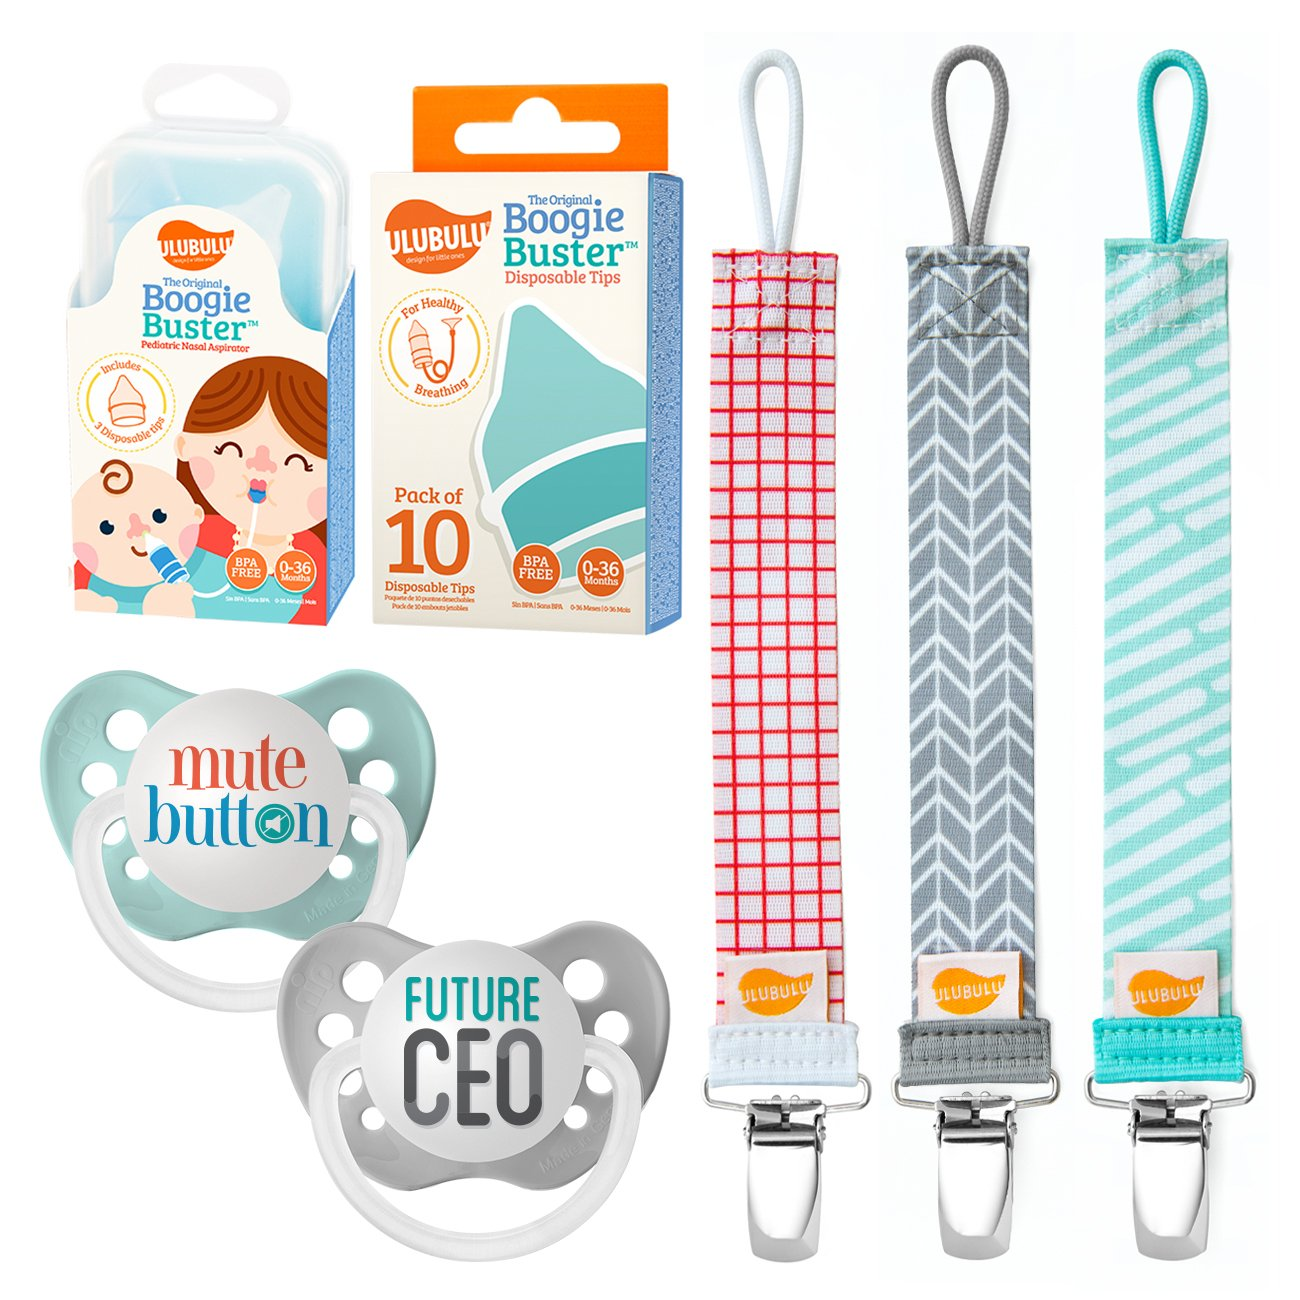 Ulubulu Mute Button and Future CEO Designs/Pacifier Clip Combo/Nasal Aspirator Boogie Buster and 10 Disposable Tips, 6-18 Months by Ulubulu